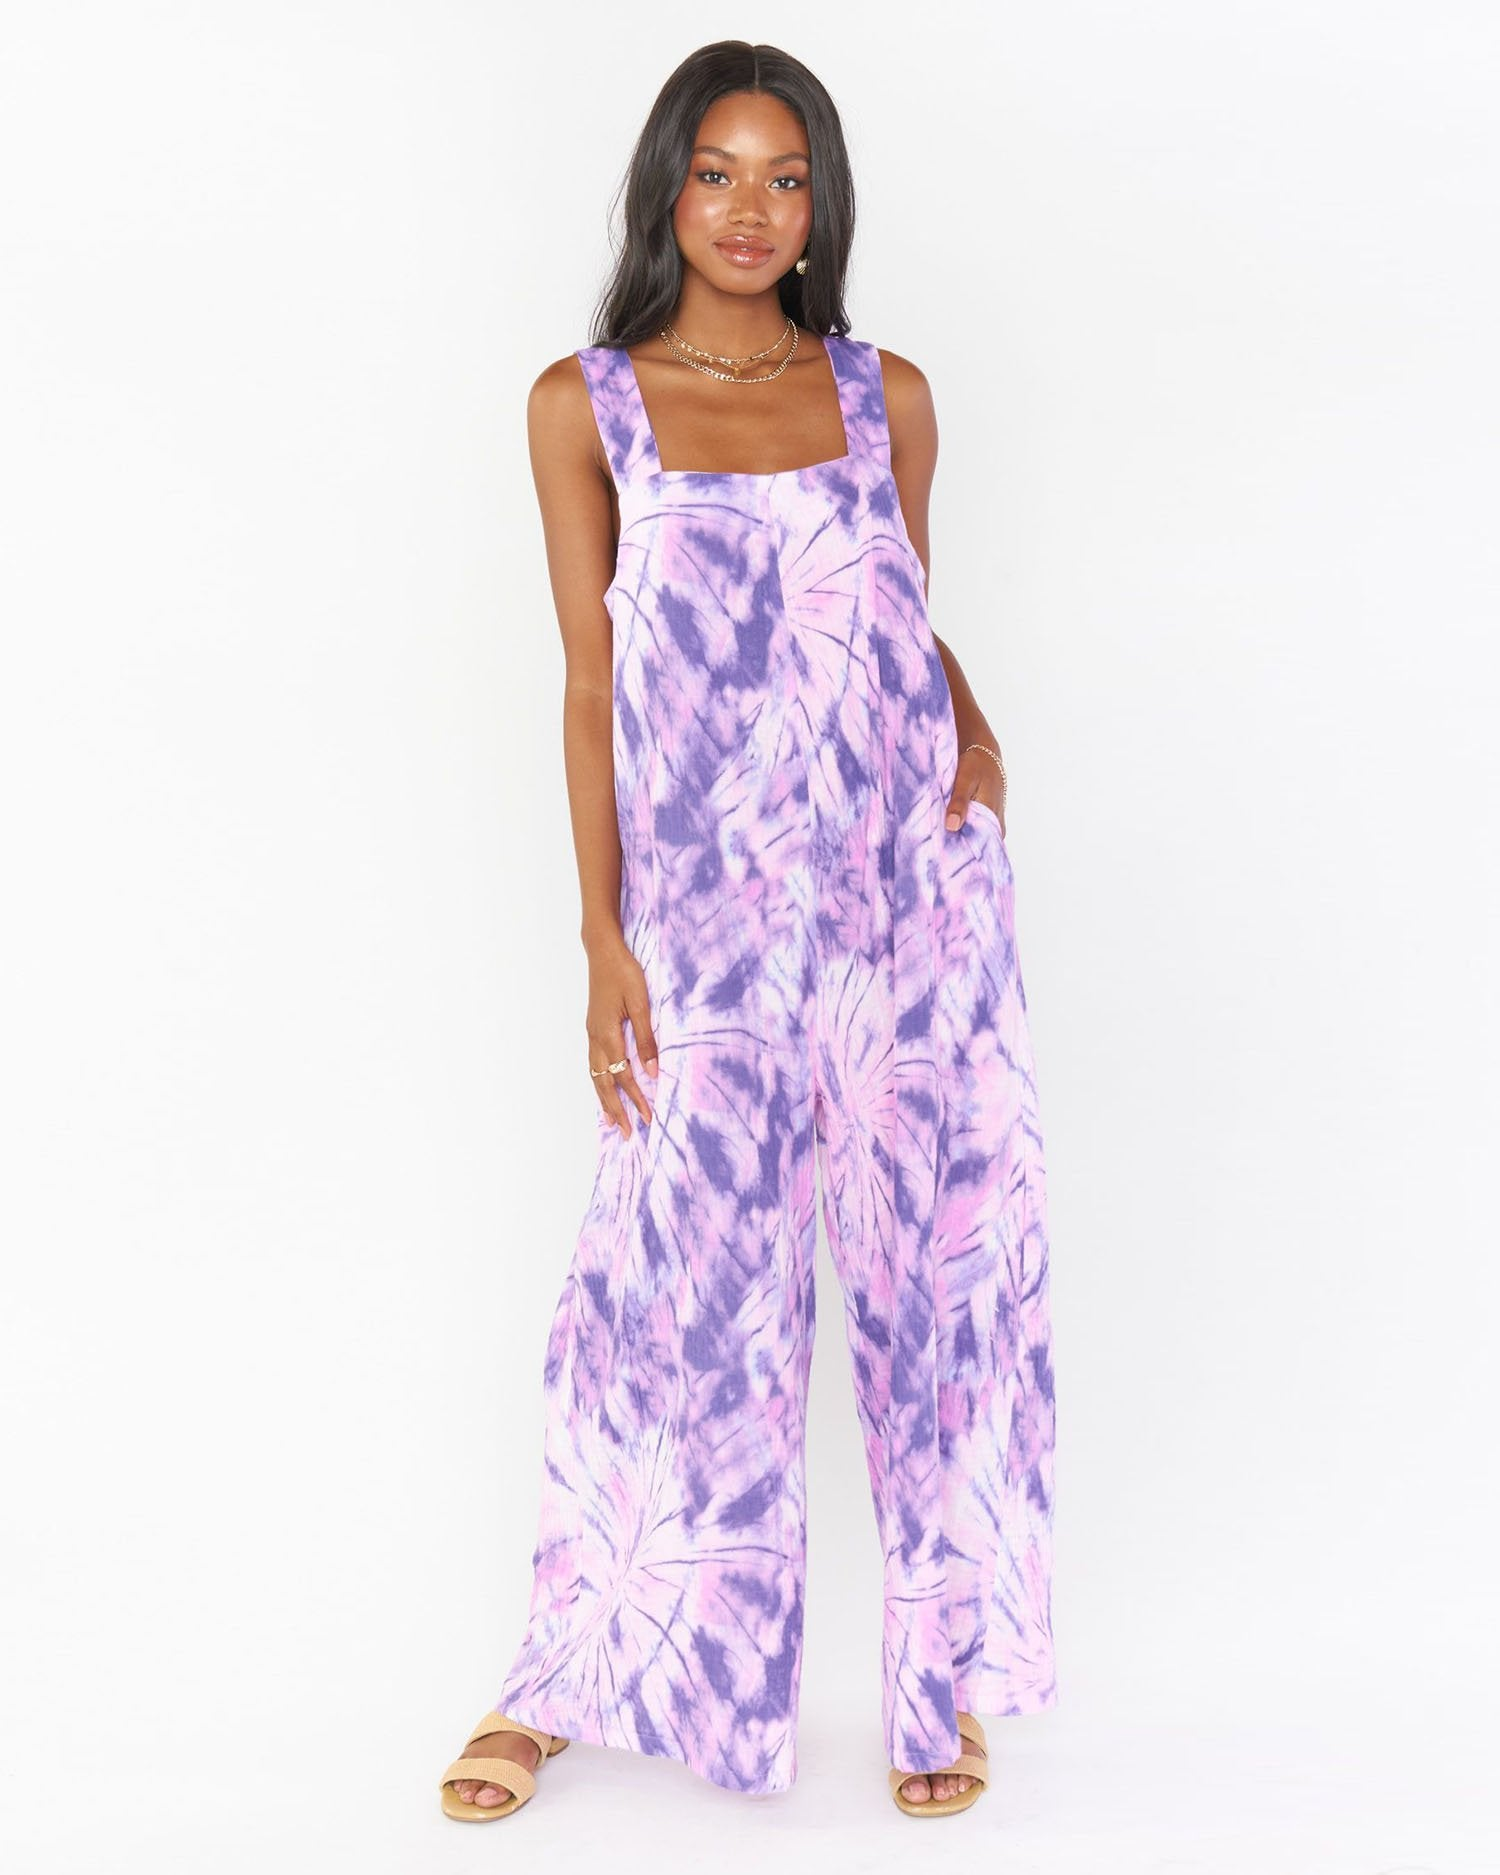 Load image into Gallery viewer, Summerland Jumpsuit - Purple Tie Dye | Show Me Your Mumu - Women's Clothing